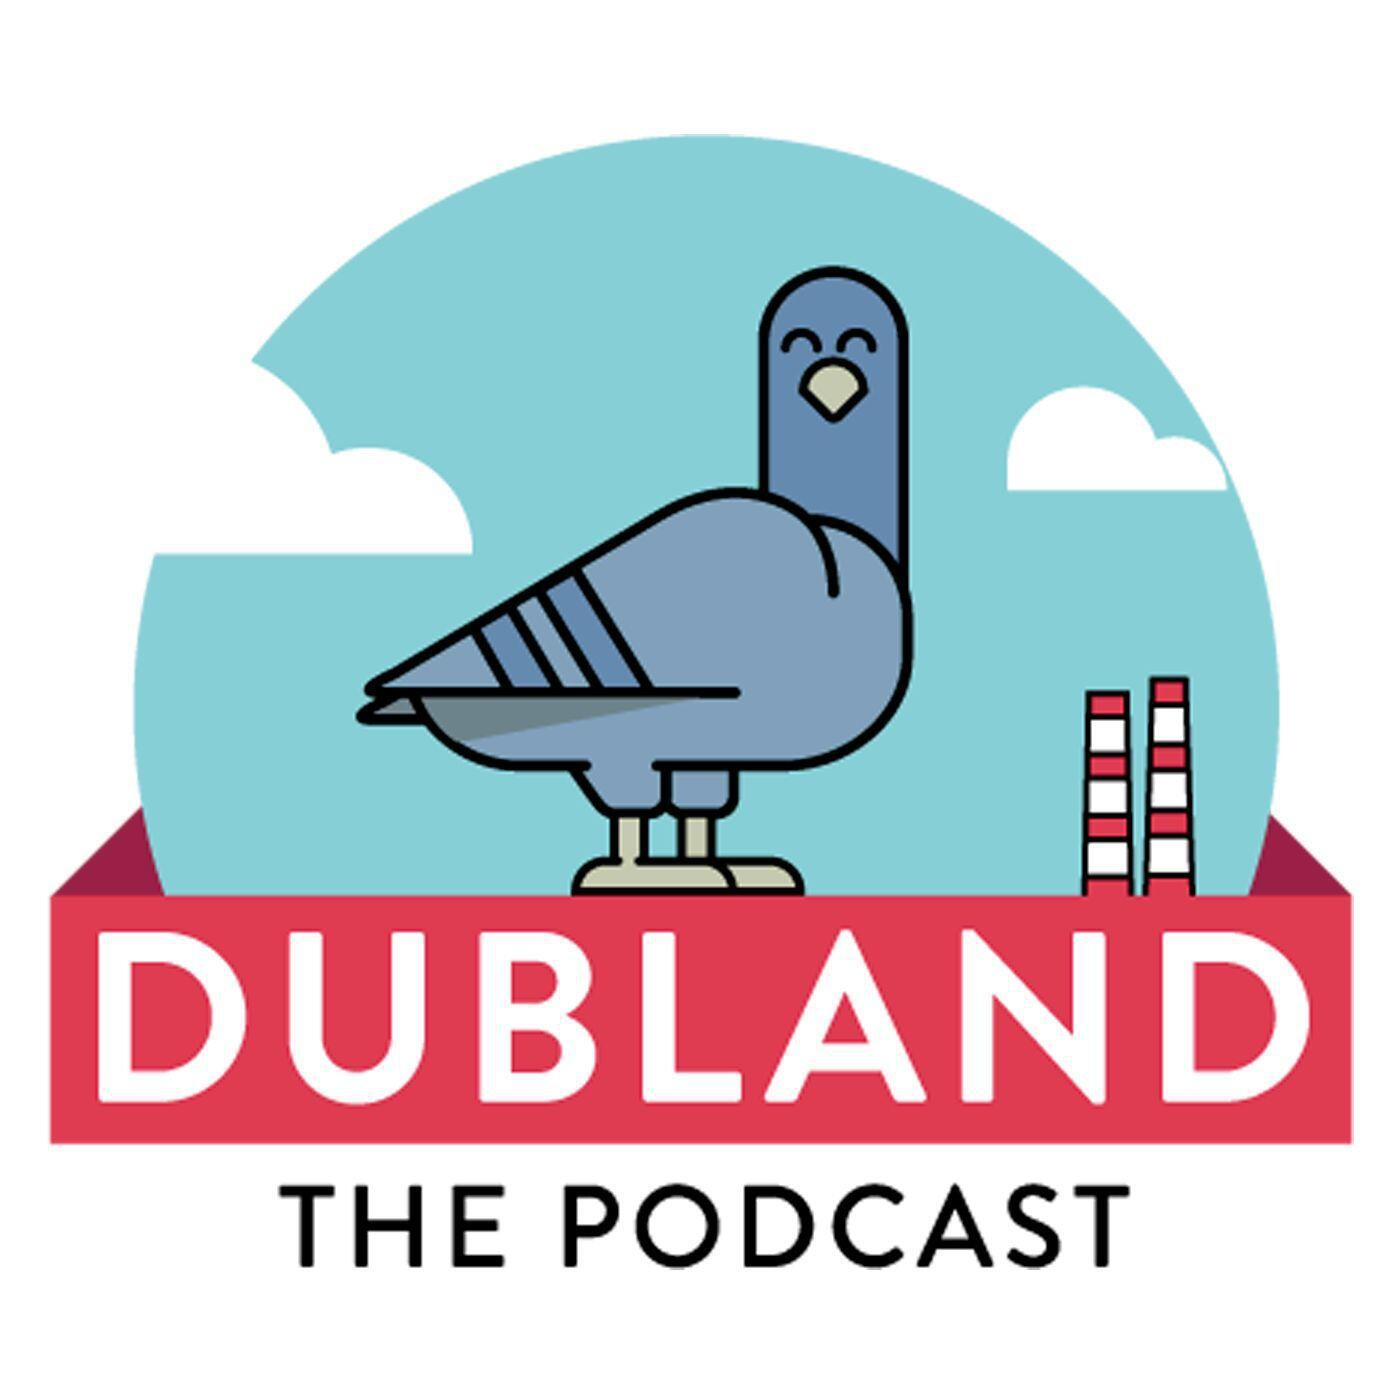 DUBLAND THE PODCAST EPISODE TWO